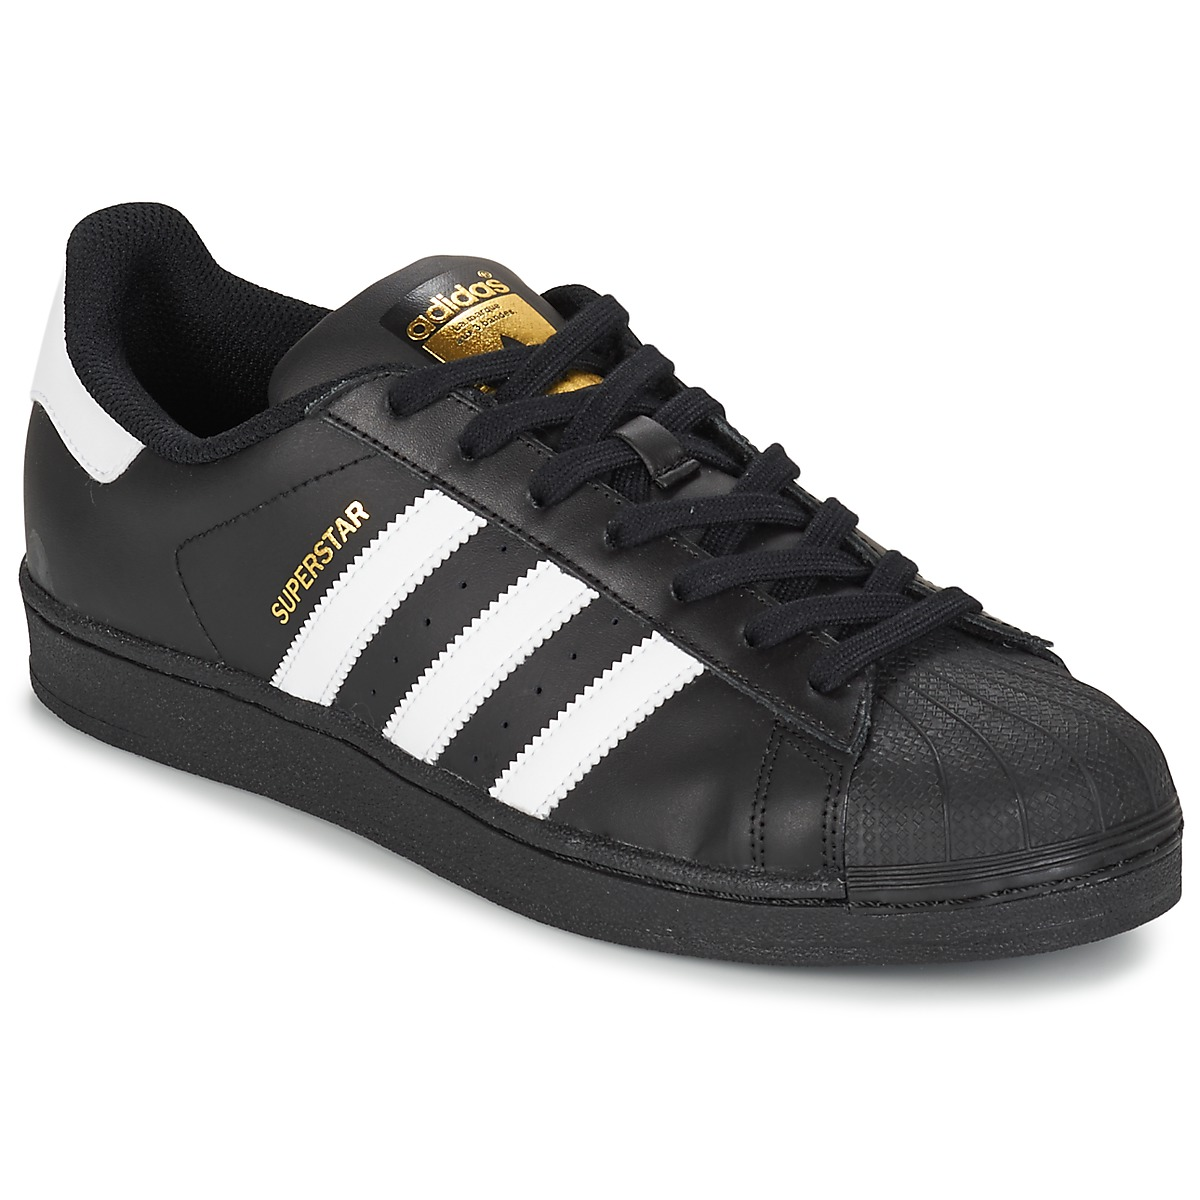 outlet store sale 18415 087a7 Chaussures Homme Baskets basses adidas Originals SUPERSTAR FOUNDATIO Blanc   noir